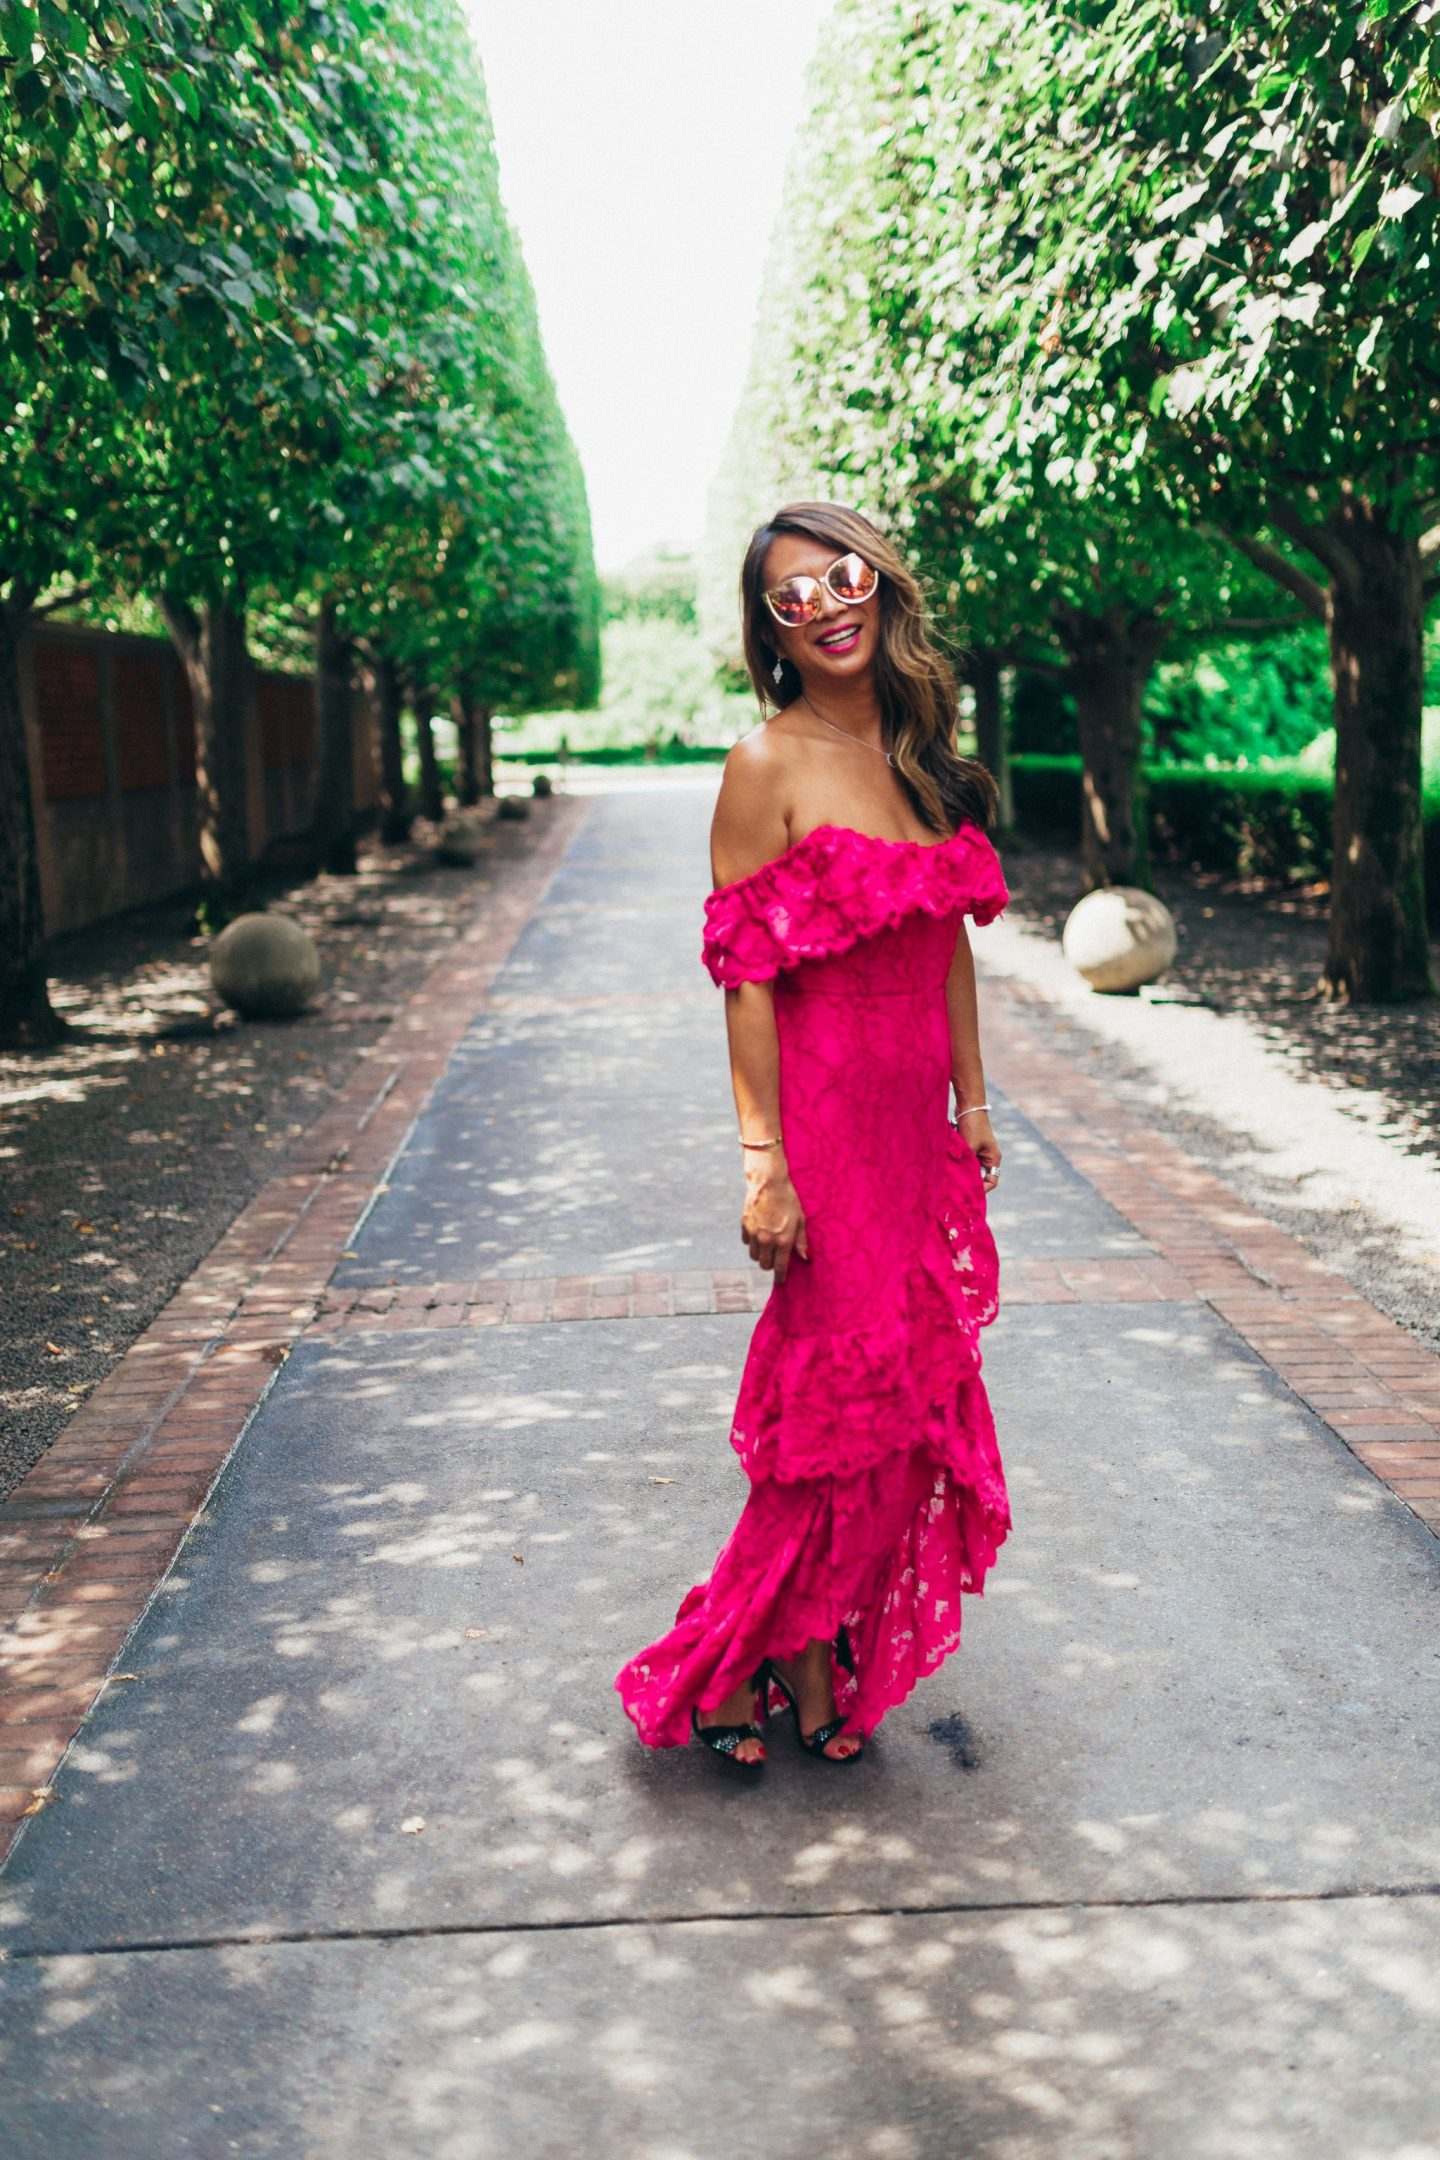 Lovers and Friends Lace Gown, Jennifer Worman, Chicago Botanic Garden, Revolve Dress, What to wear to a Wedding, Wedding Guest Style, Pink Lace Dress, Best Chicago Style Blogger